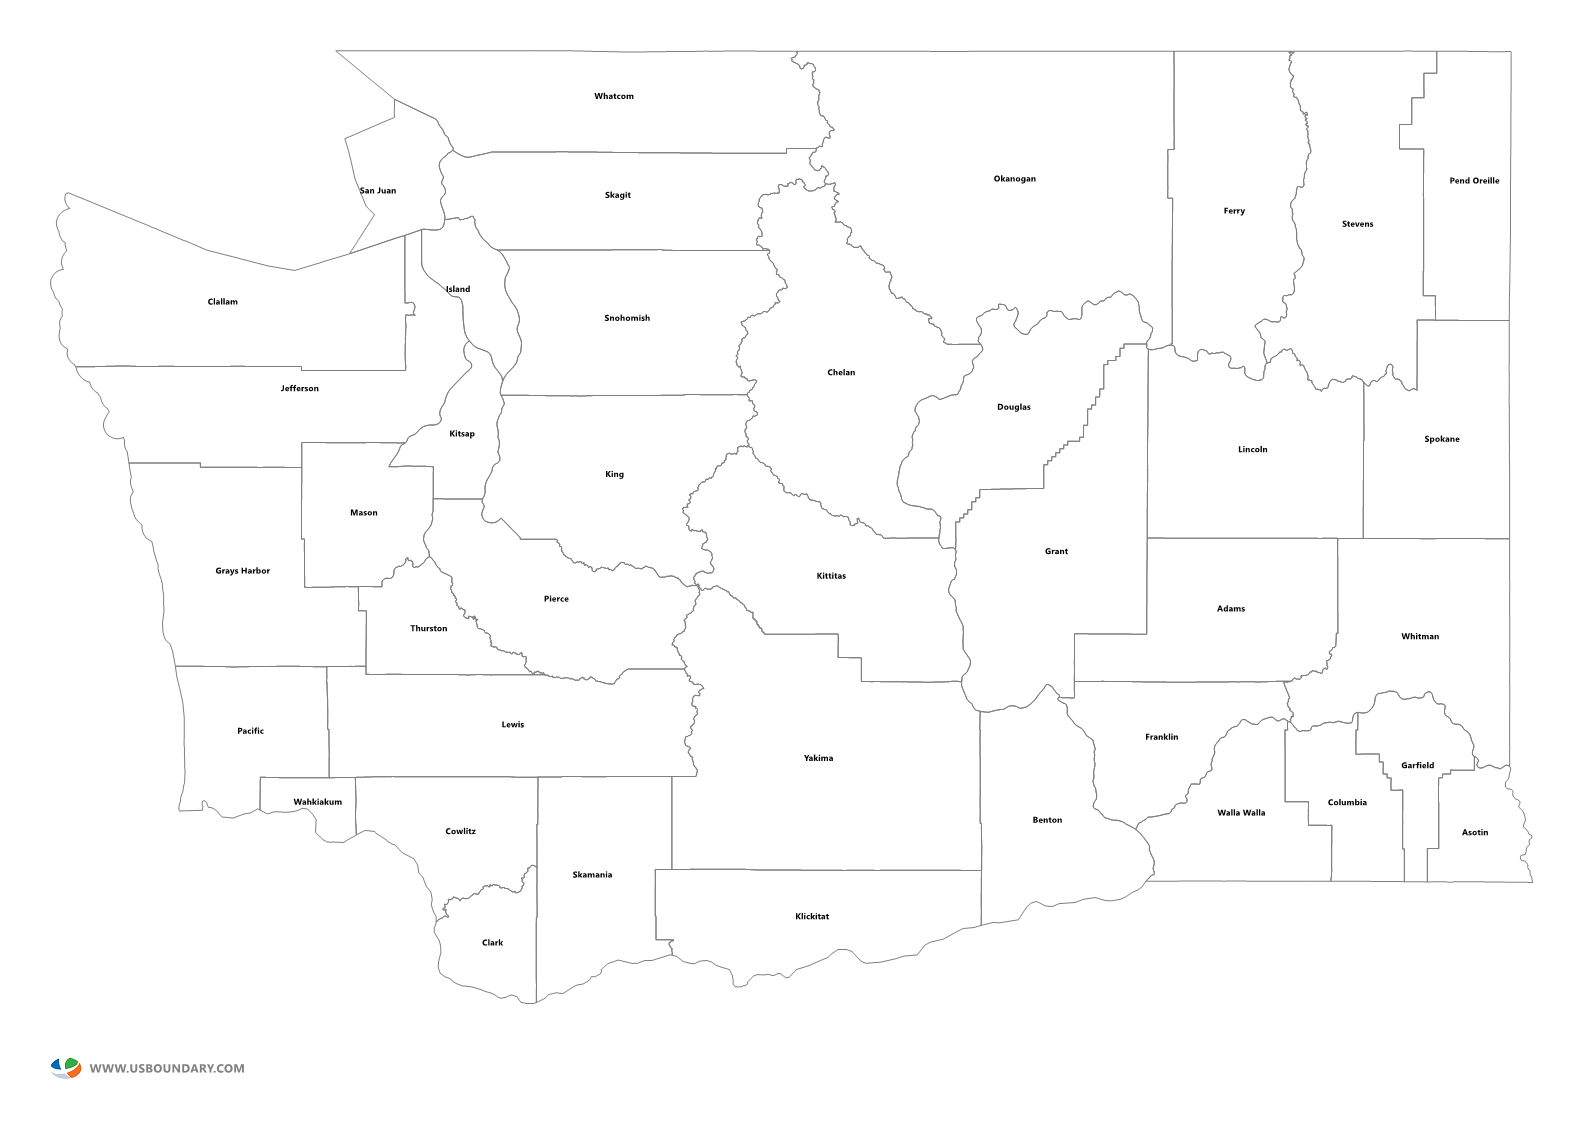 Washington state outline png. Counties maps download map